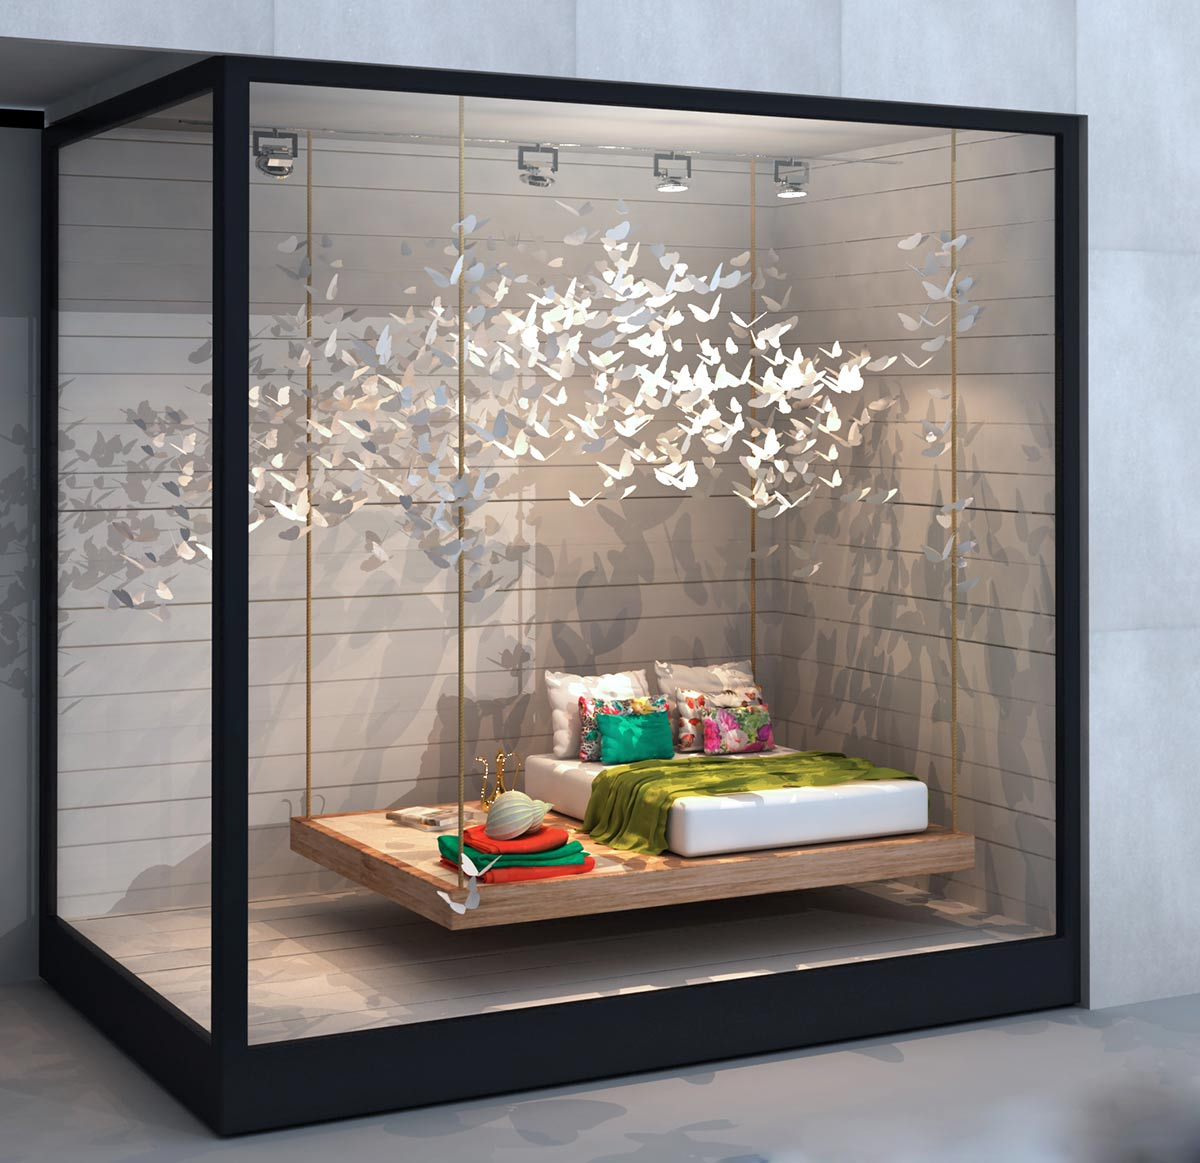 Exhibition Stand For Zara : Vandadesigners zara home window display ii